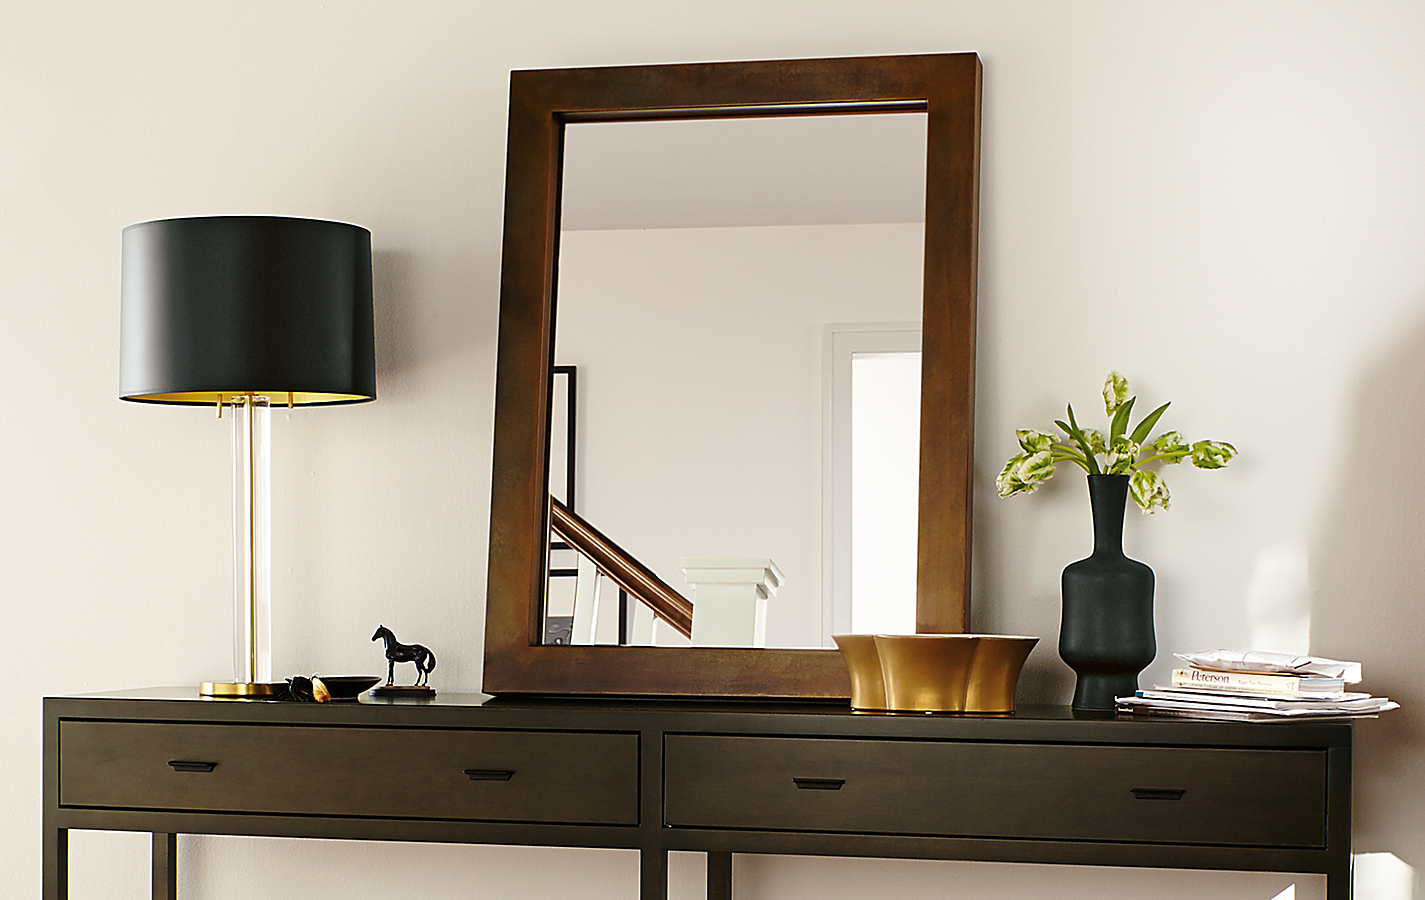 Detail of Berkeley console table in entryway